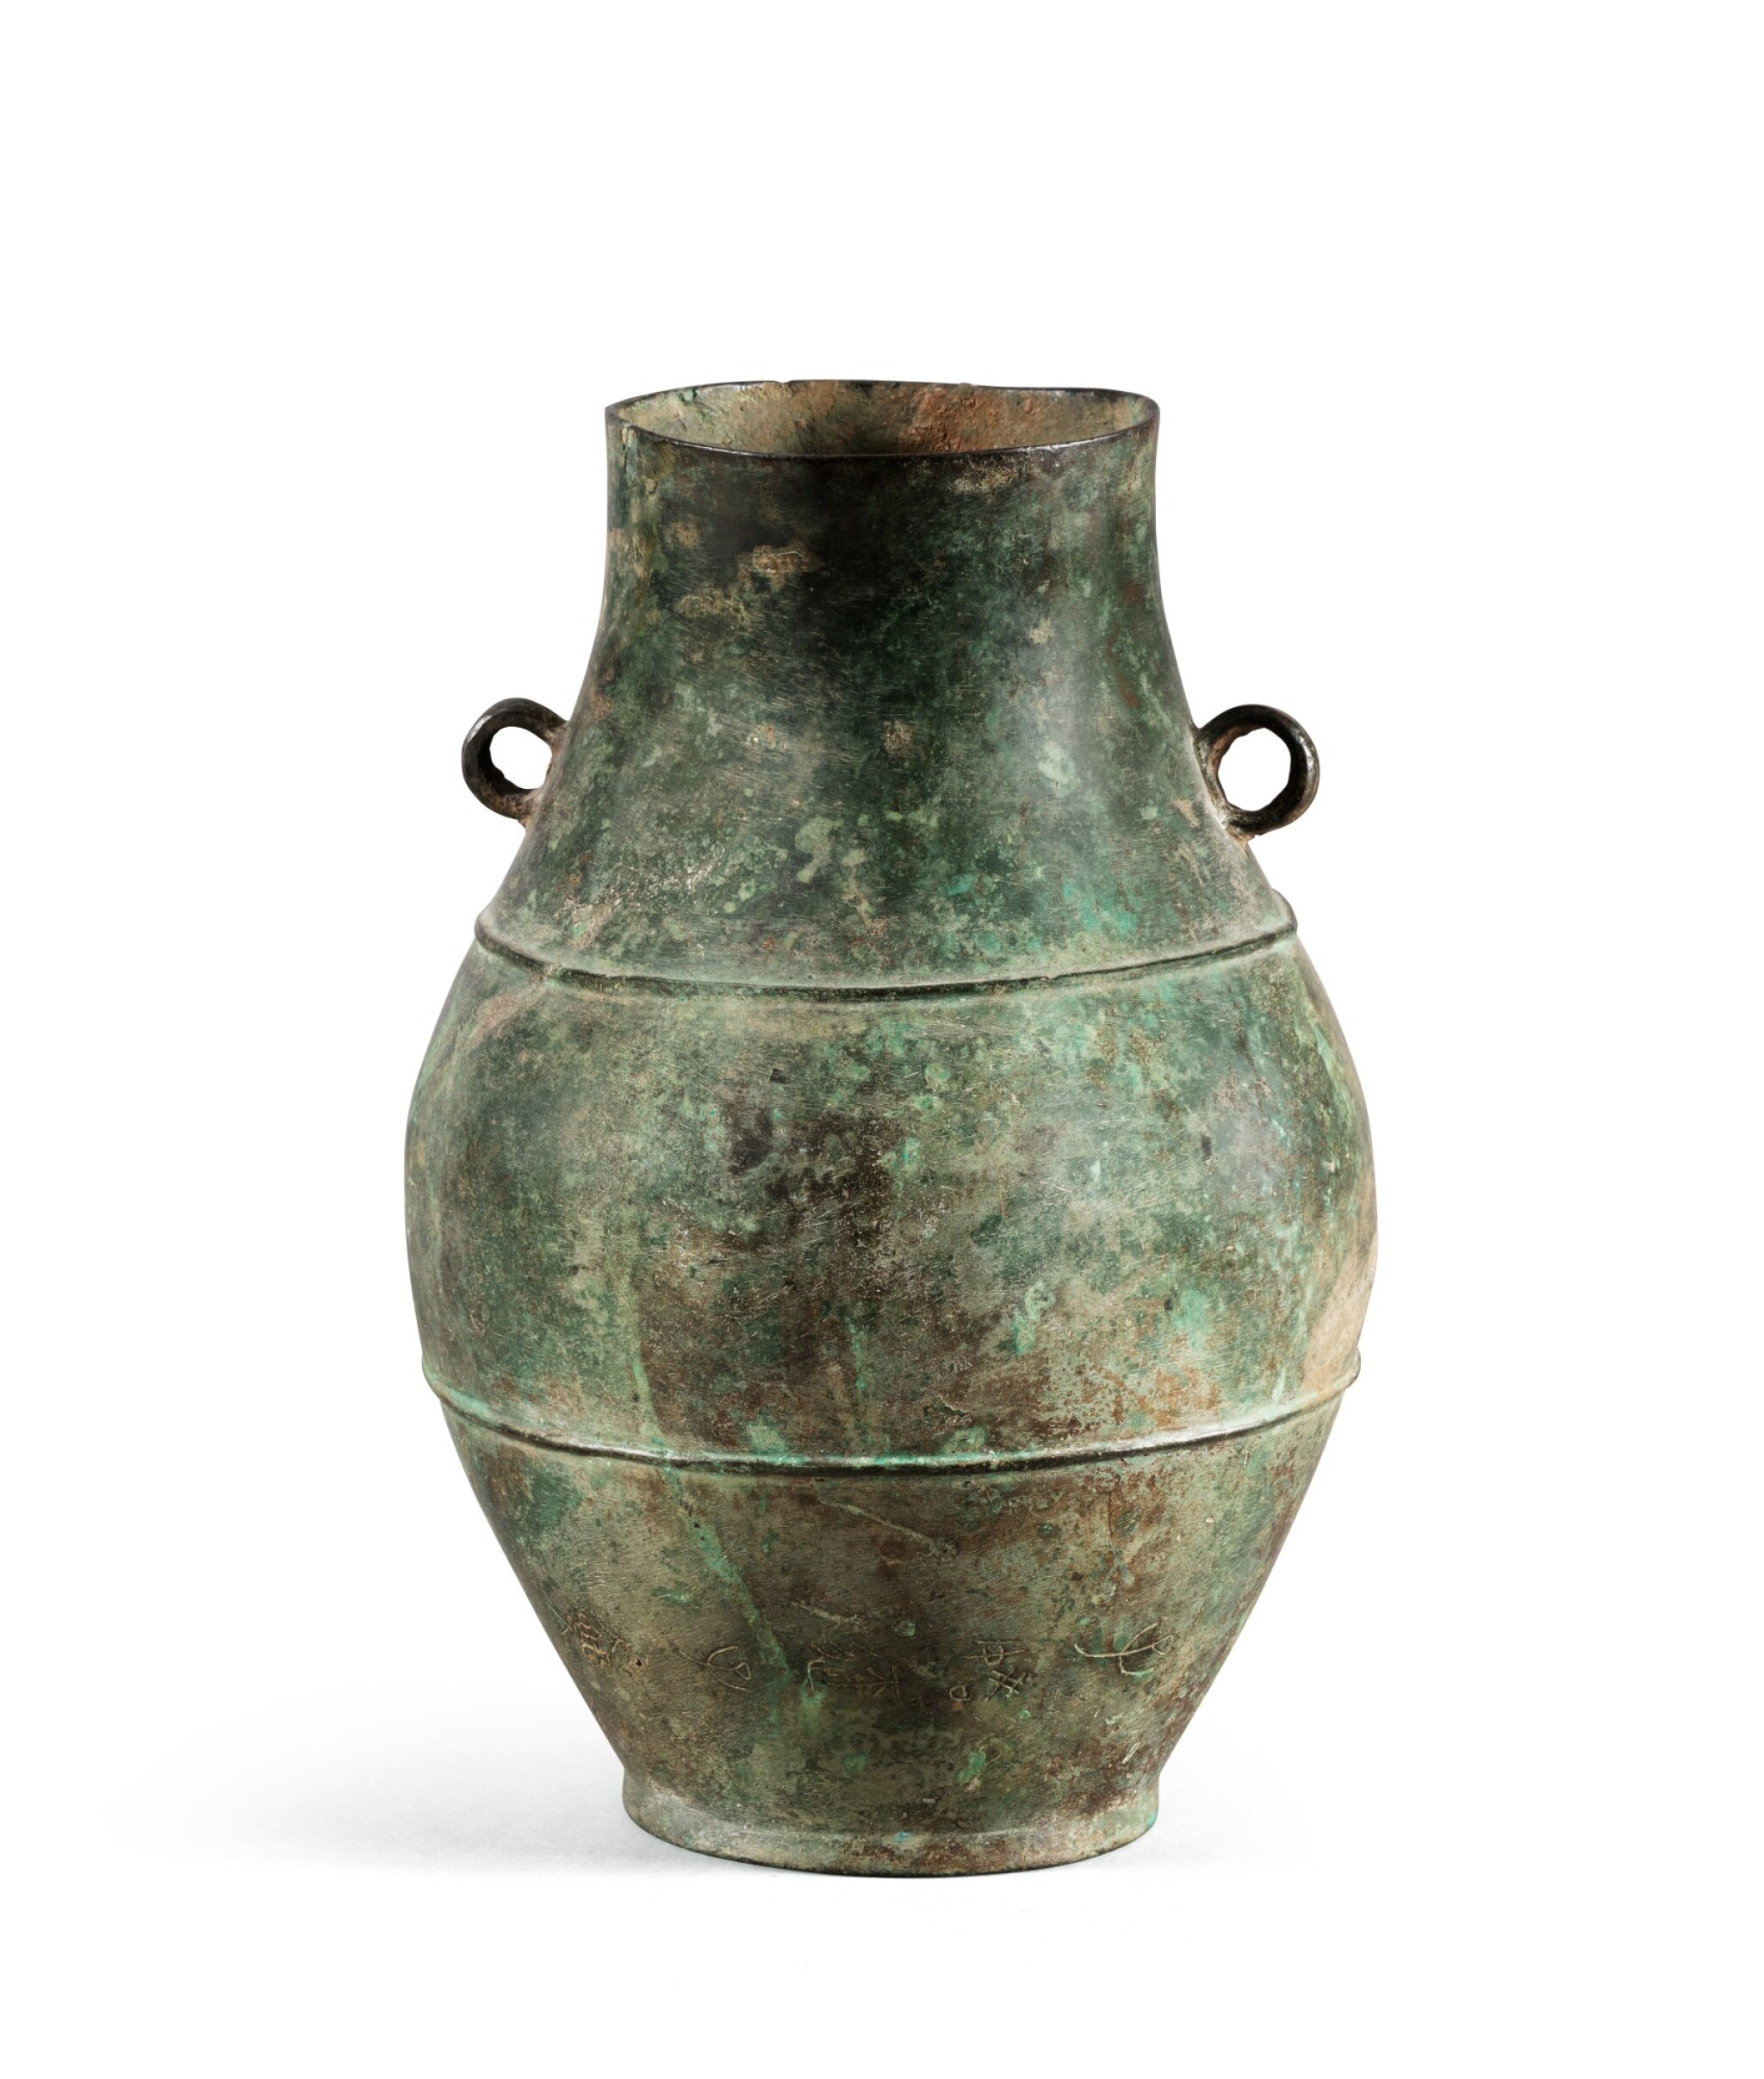 View full screen - View 1 of Lot 305. An archaic bronze vase, hu, China, probably Han Dynasty.